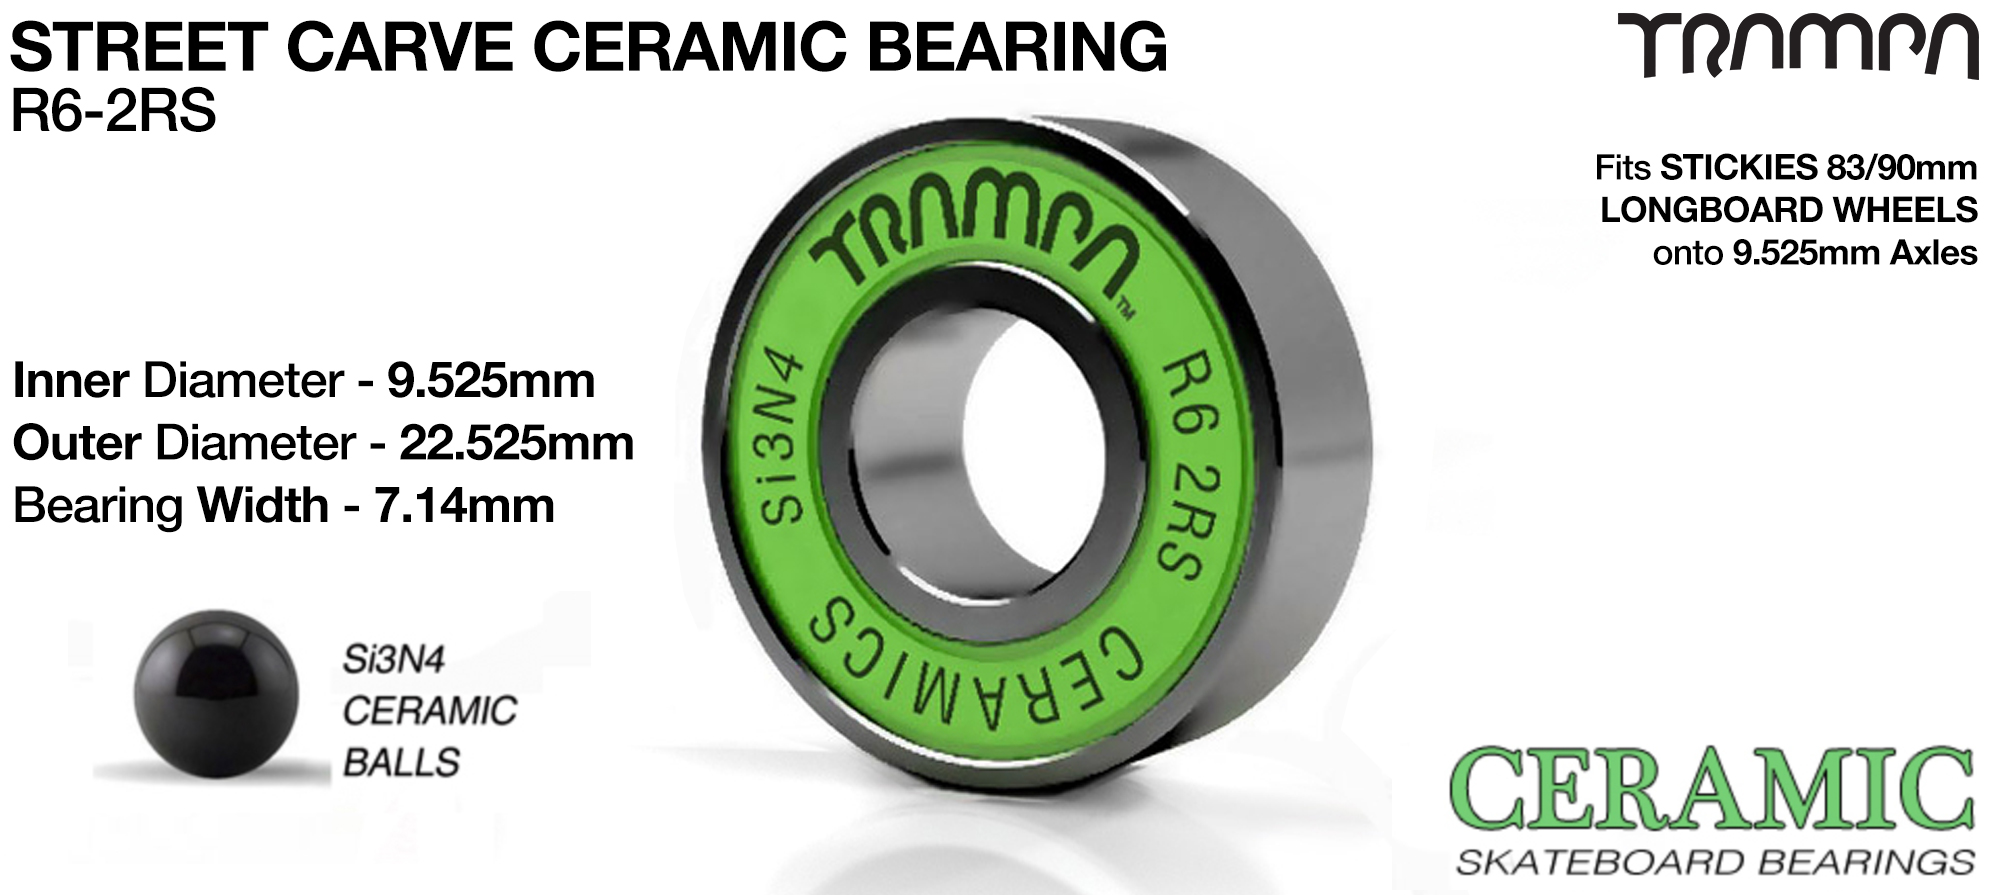 2x GREEN CERAMIC Si3N4 R6-2RS 9.525mm Bearings (+£12.50)